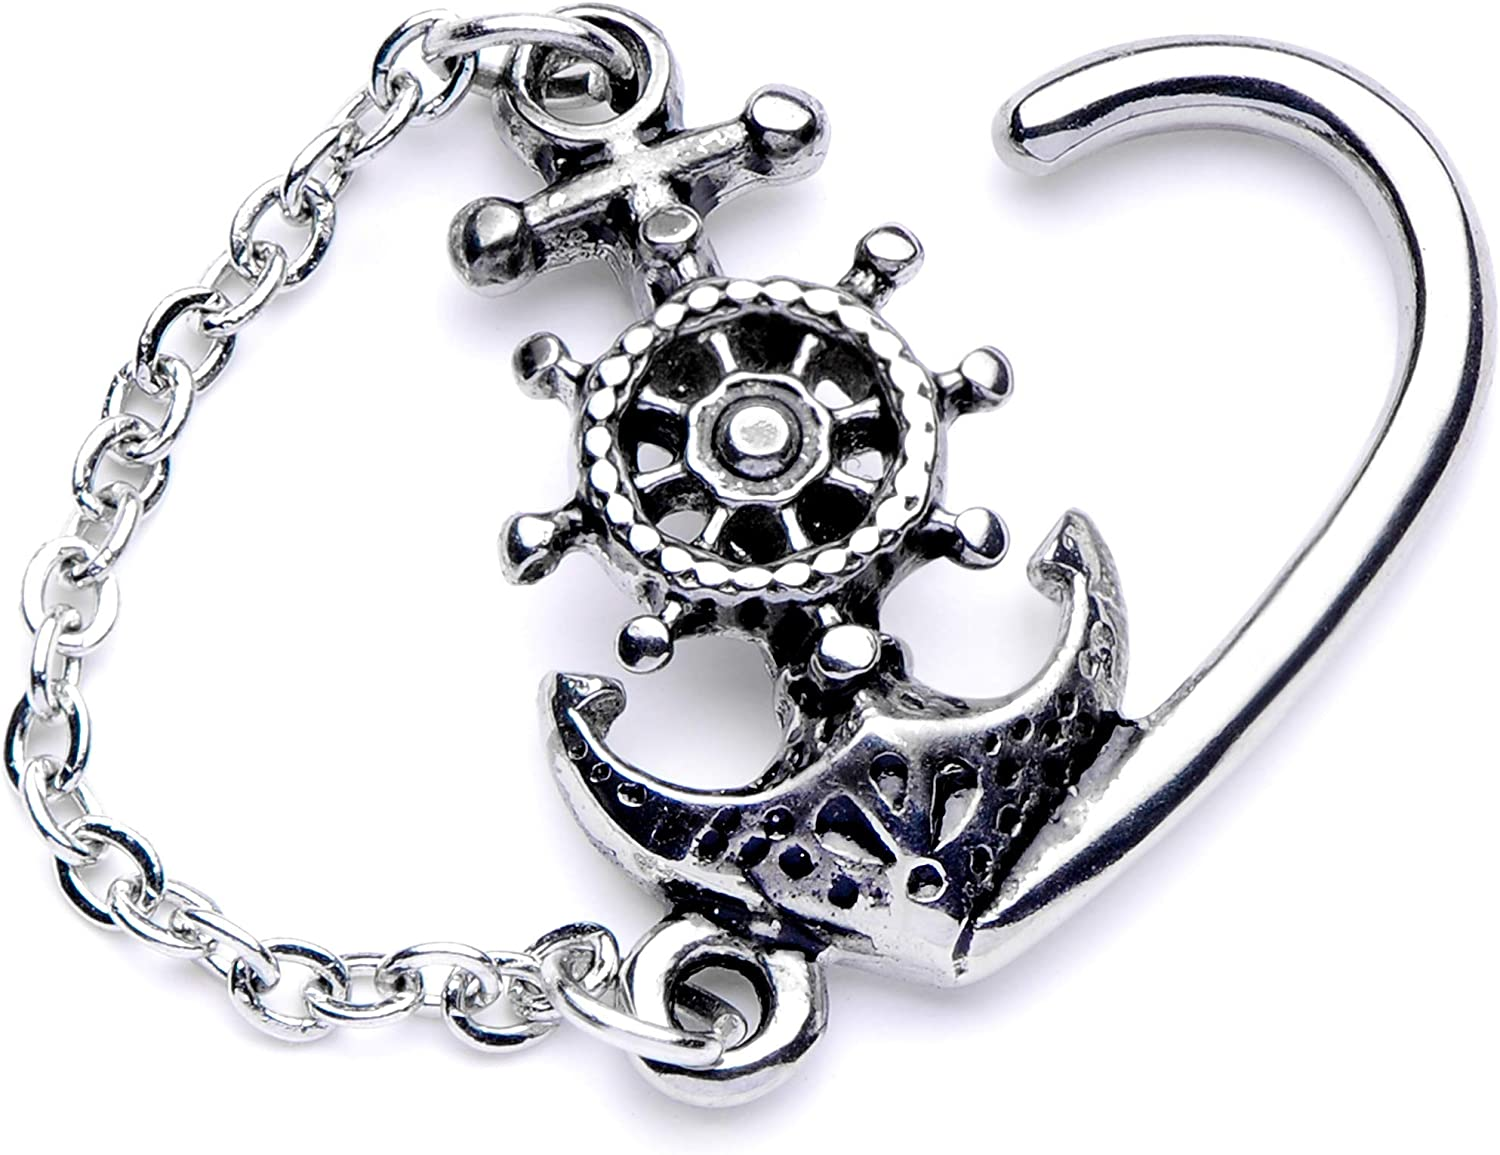 Body Candy Womens 16G 316L Steel Nautical Dangle Right Heart Closure Ring Right Daith Helix Tragus Rook 10mm